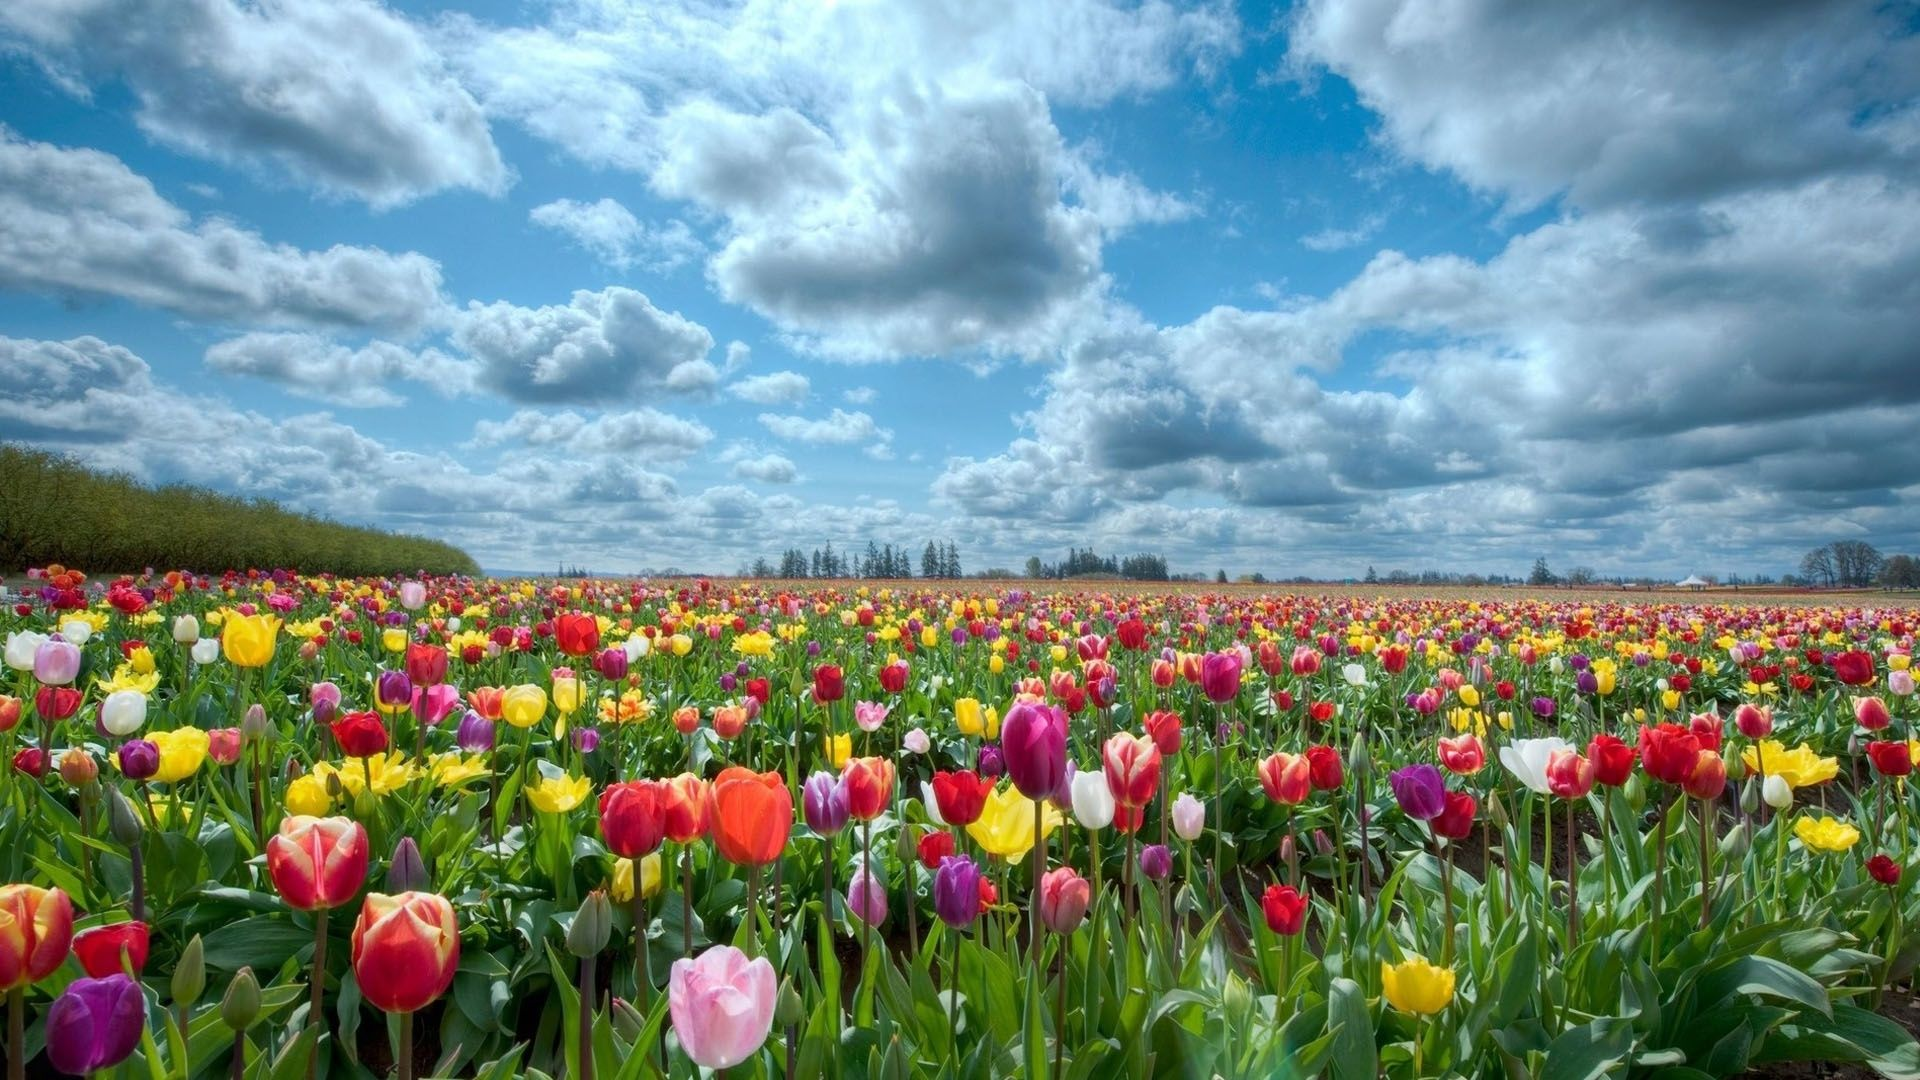 Field of flowers background hd wallpapers field of flowers similar posts field of flowers lavender hd wallpaper field of pink flowers hd wallpaper field of flowers wallpaper colorful nature flowers wallpaper voltagebd Image collections